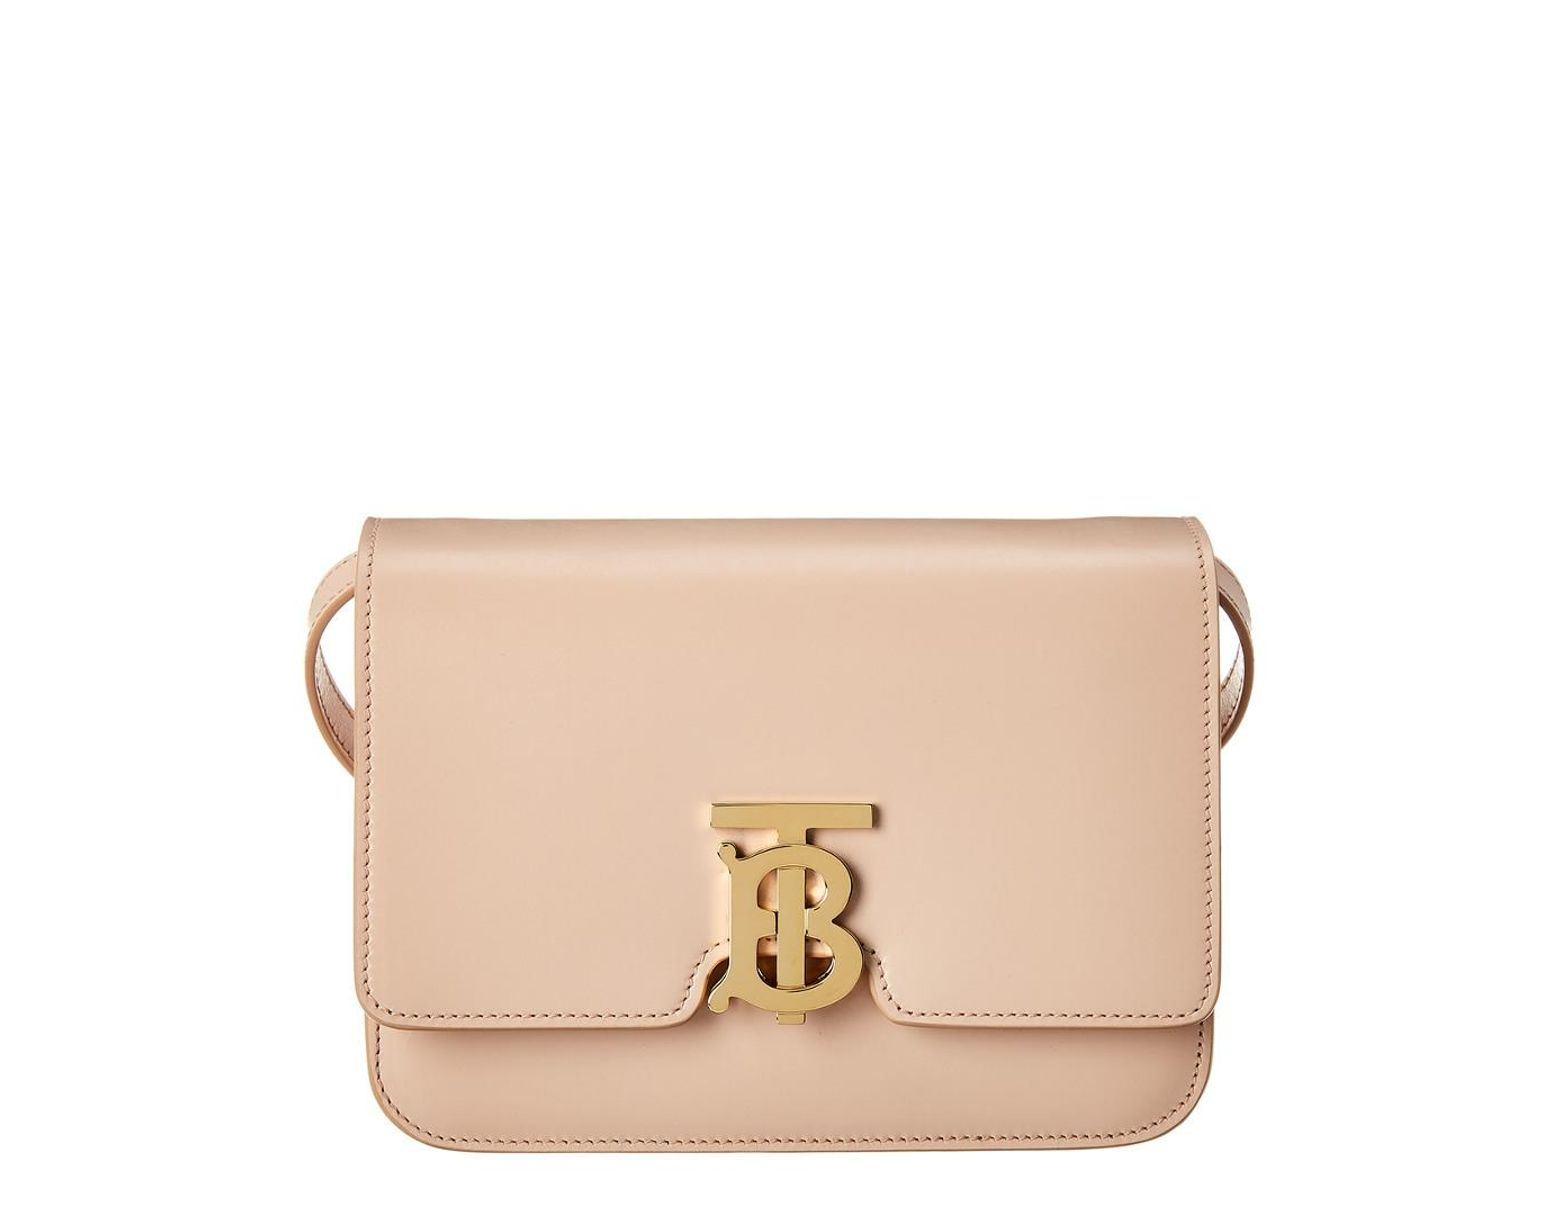 3b123f8dcb Burberry Small Tb Leather Shoulder Bag in Natural - Lyst